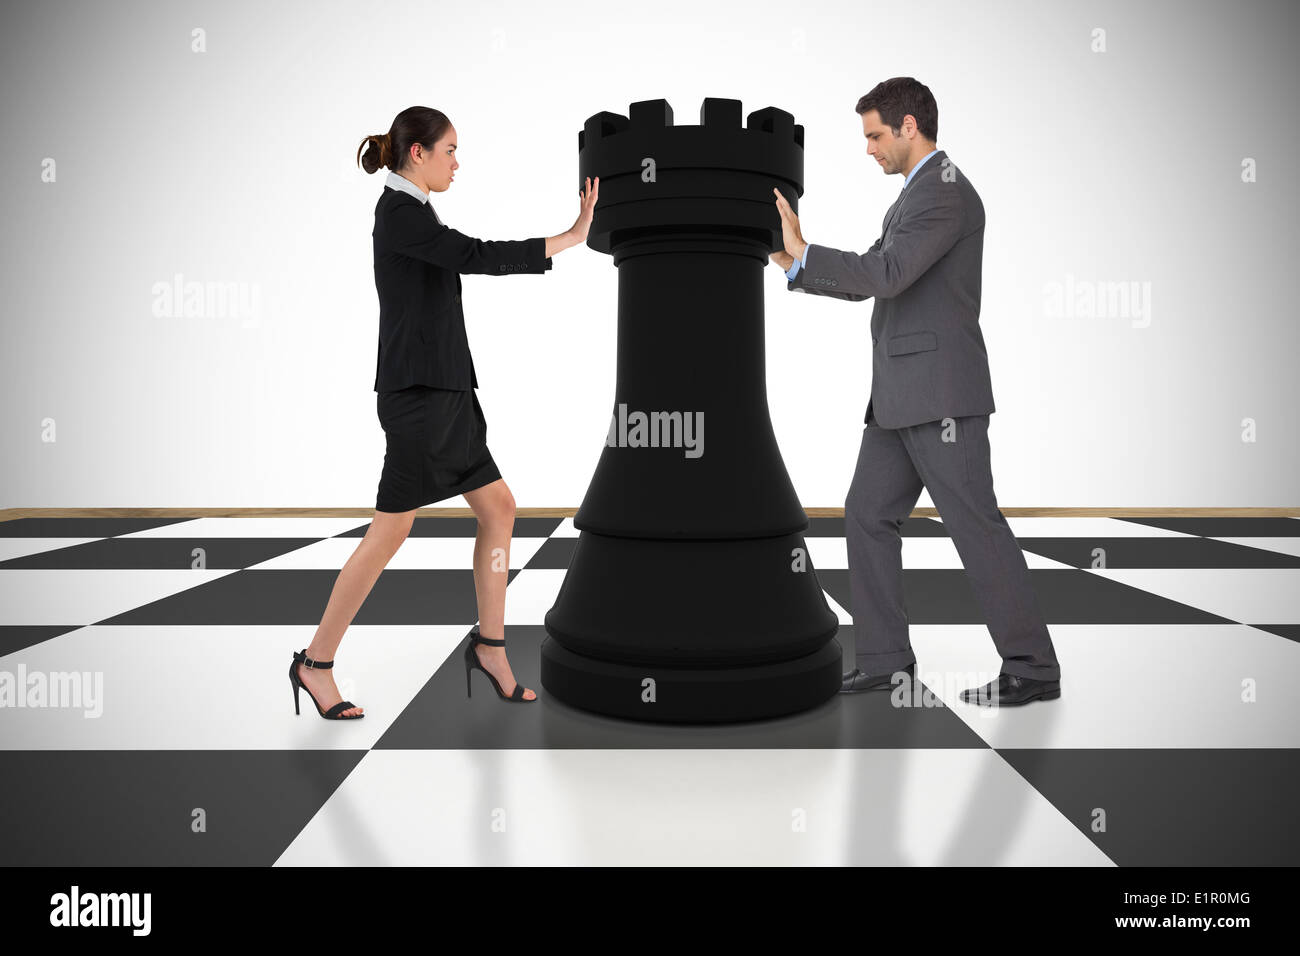 Composite image of business people pushing chess piece - Stock Image